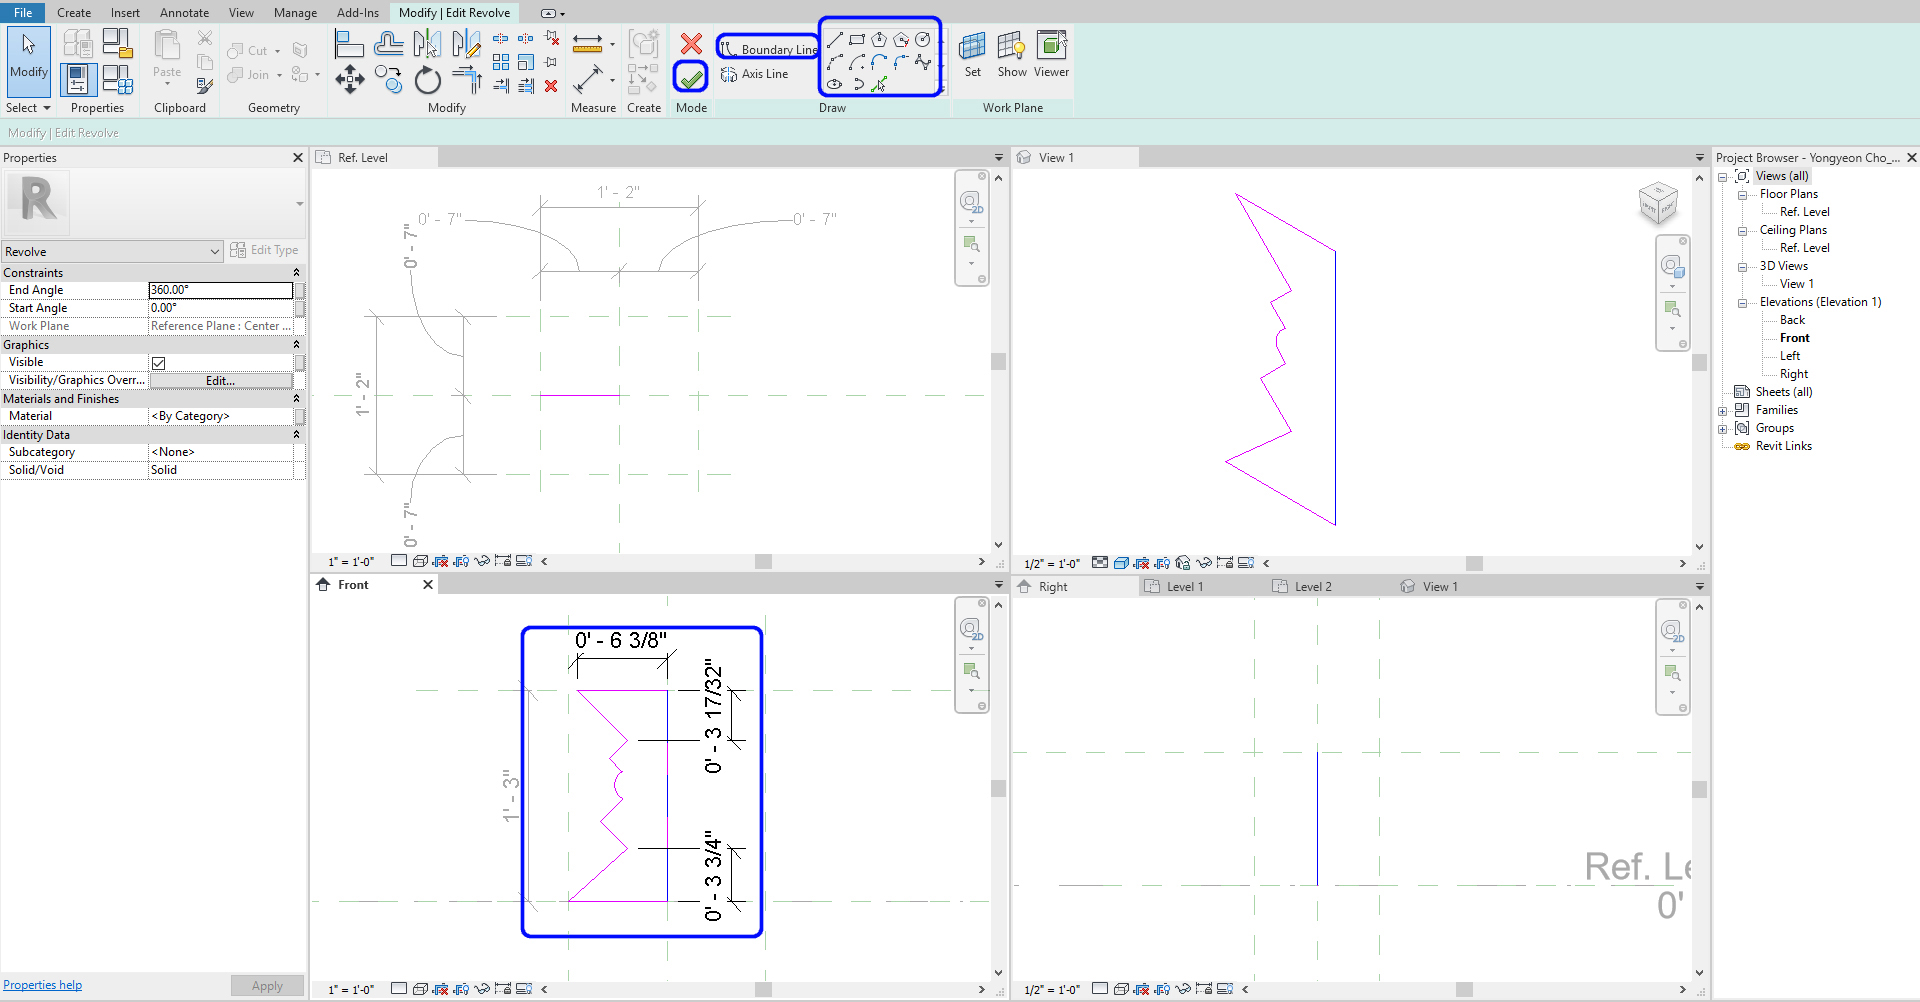 It indicates how to draw boundary lines for the stool.